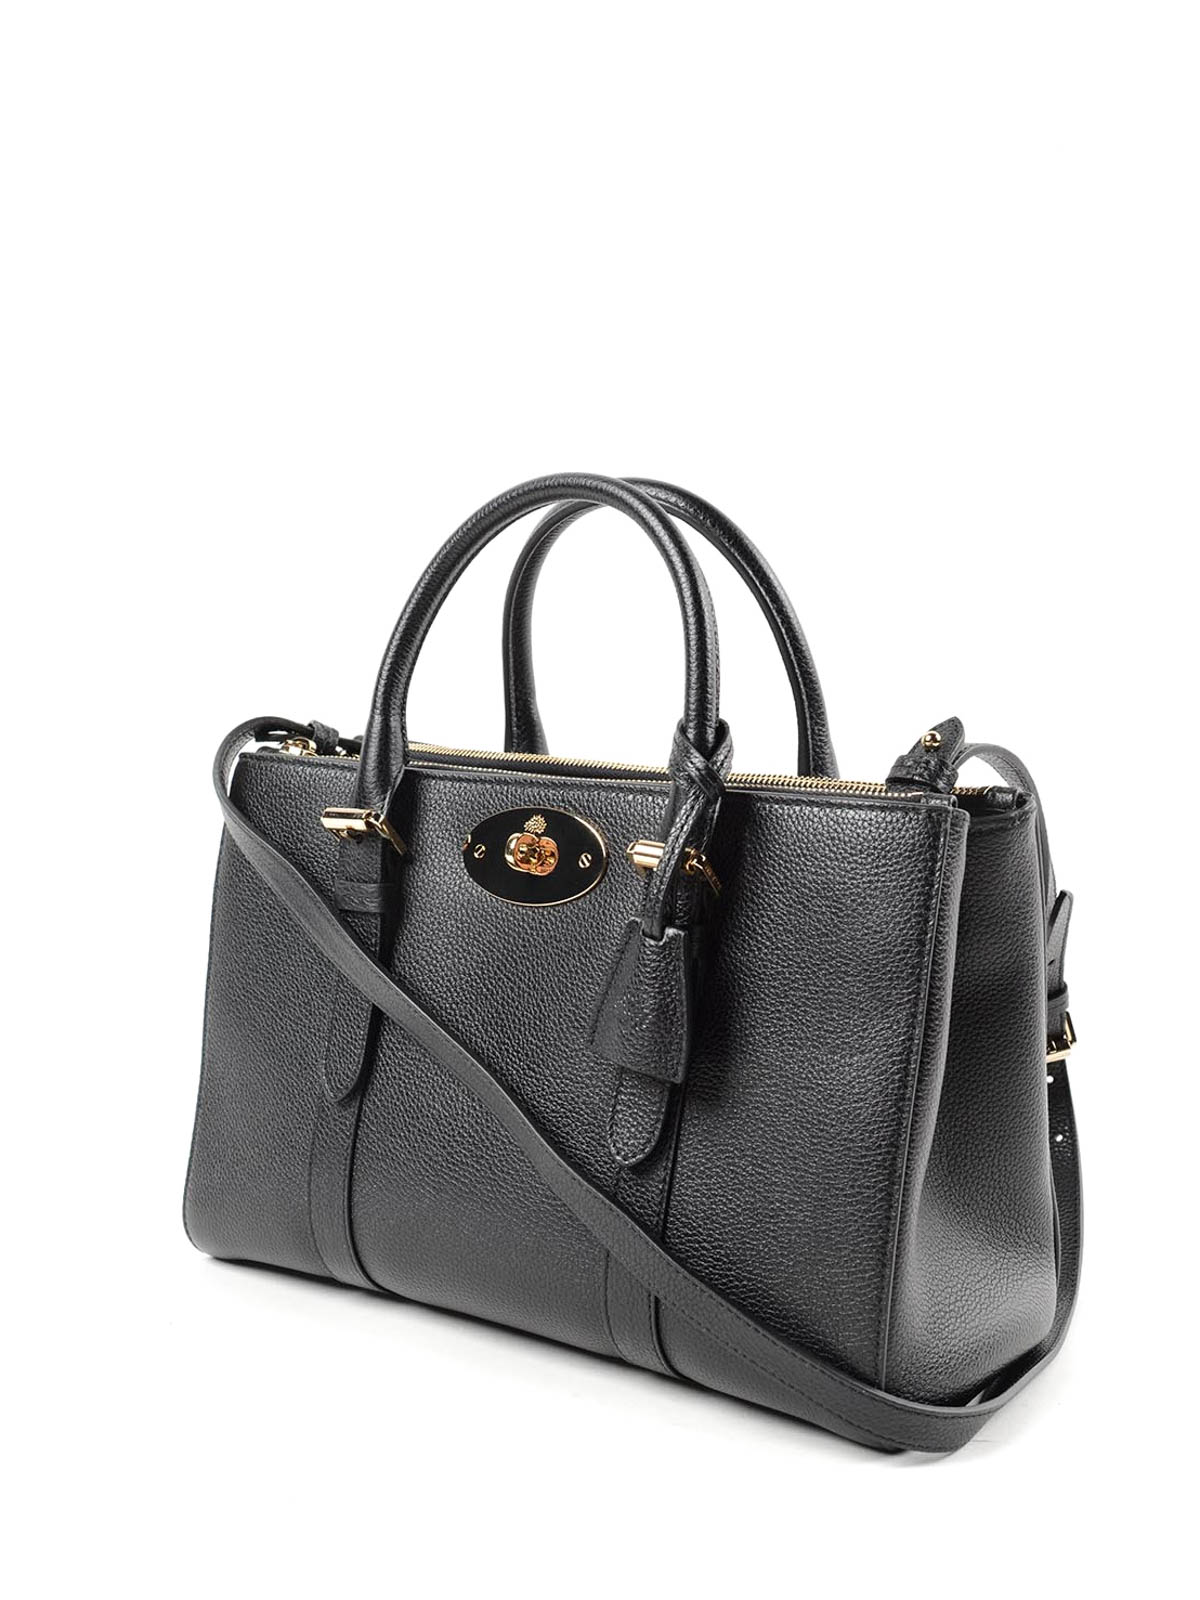 d8a5f583dc8c Small Bayswater tote by Mulberry - totes bags